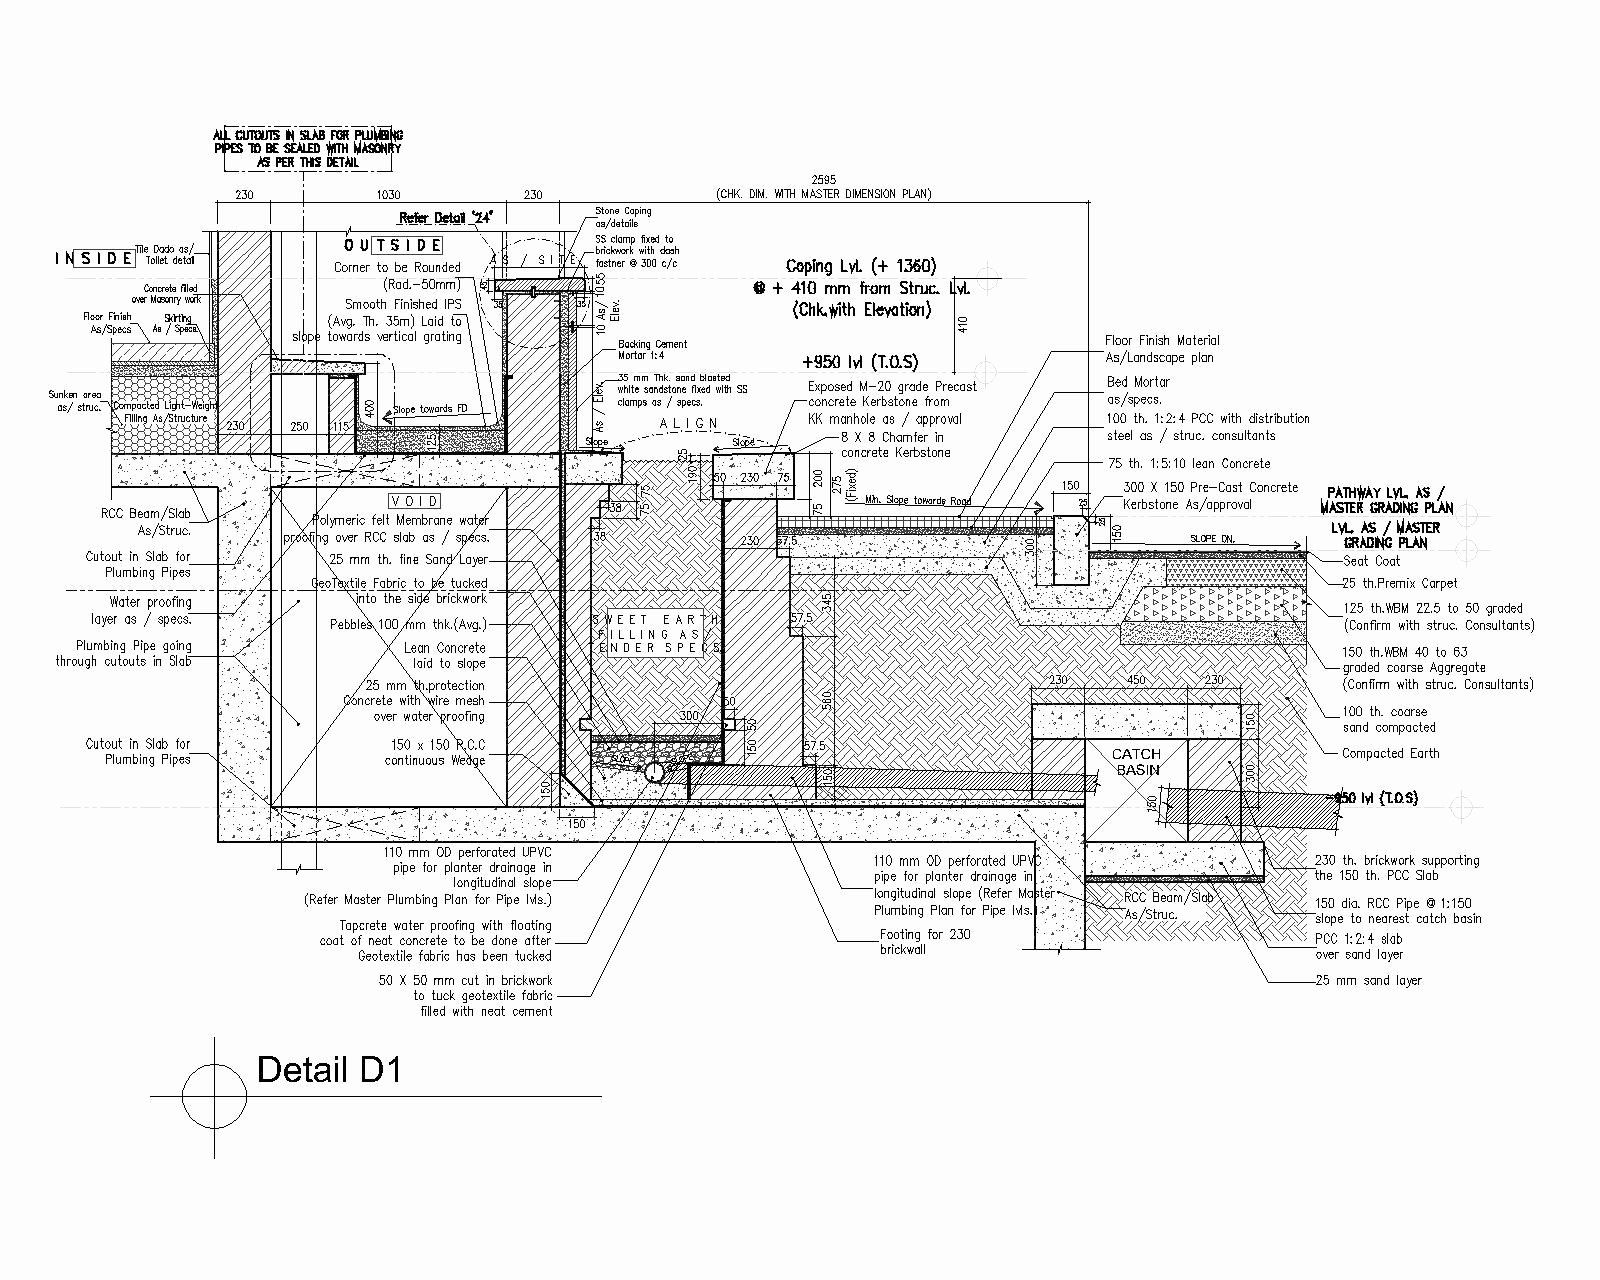 Technical Drawing Book Pdf Free Download Luxury Basic House Wiring Books Wiring Diagrams In 2020 House Plans With Photos Lake House Plans Cottage House Plans